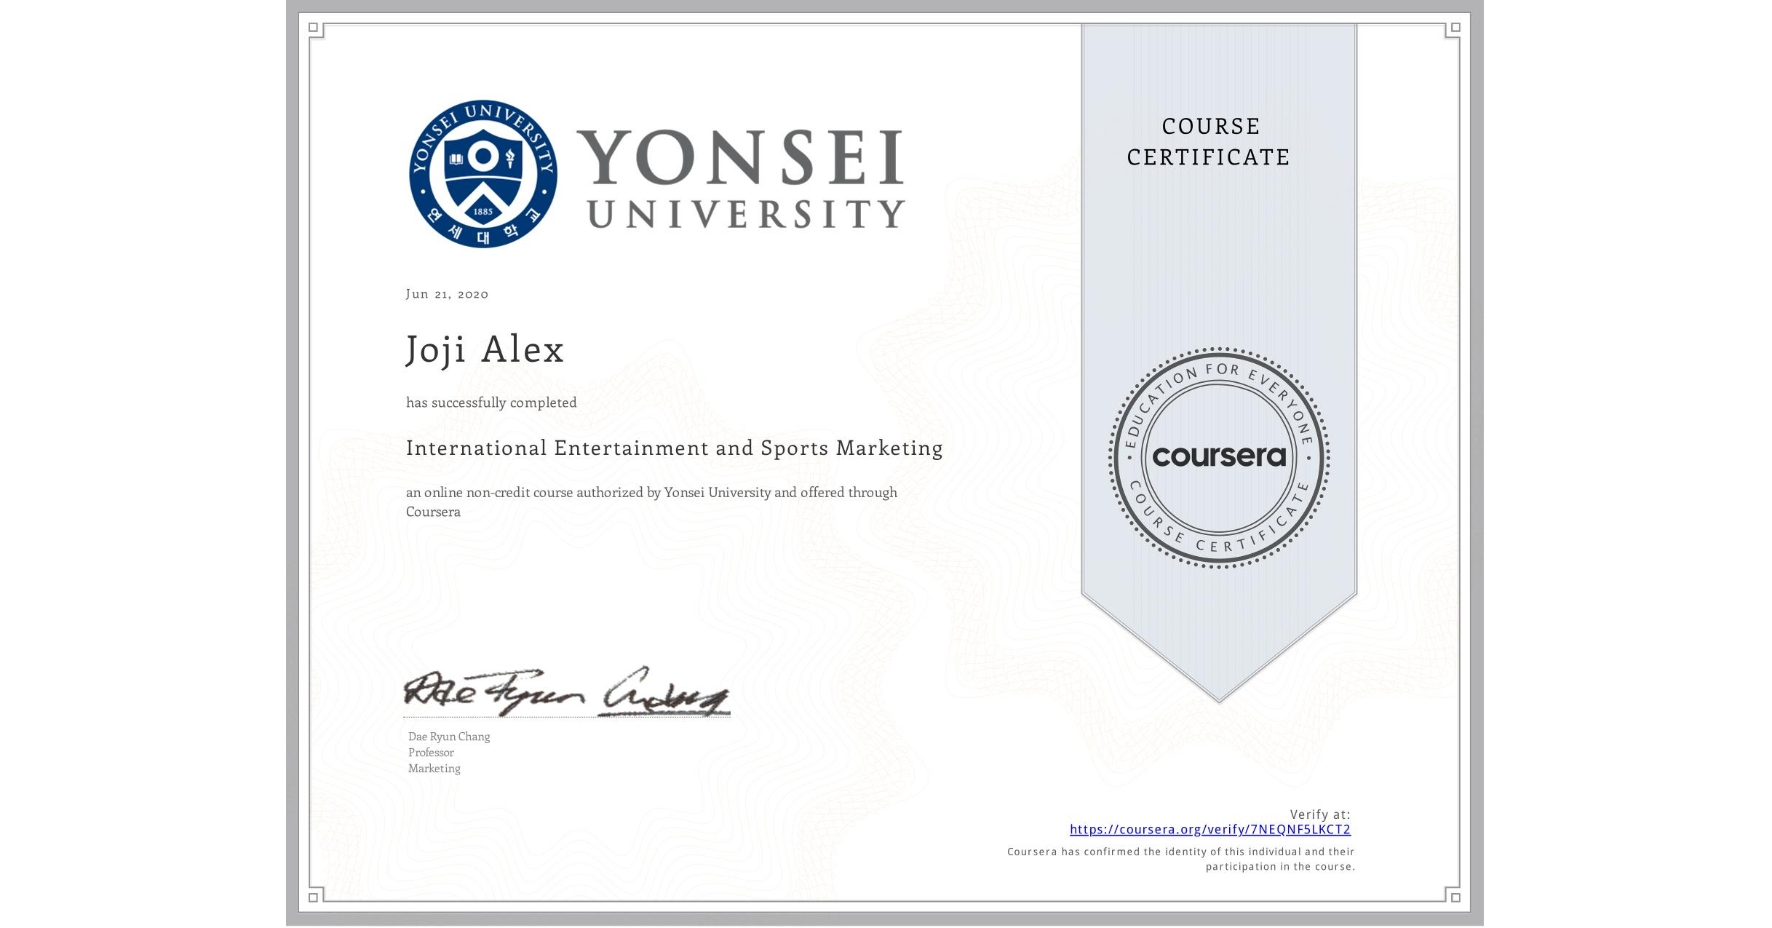 View certificate for Joji Alex, International Entertainment and Sports Marketing, an online non-credit course authorized by Yonsei University and offered through Coursera